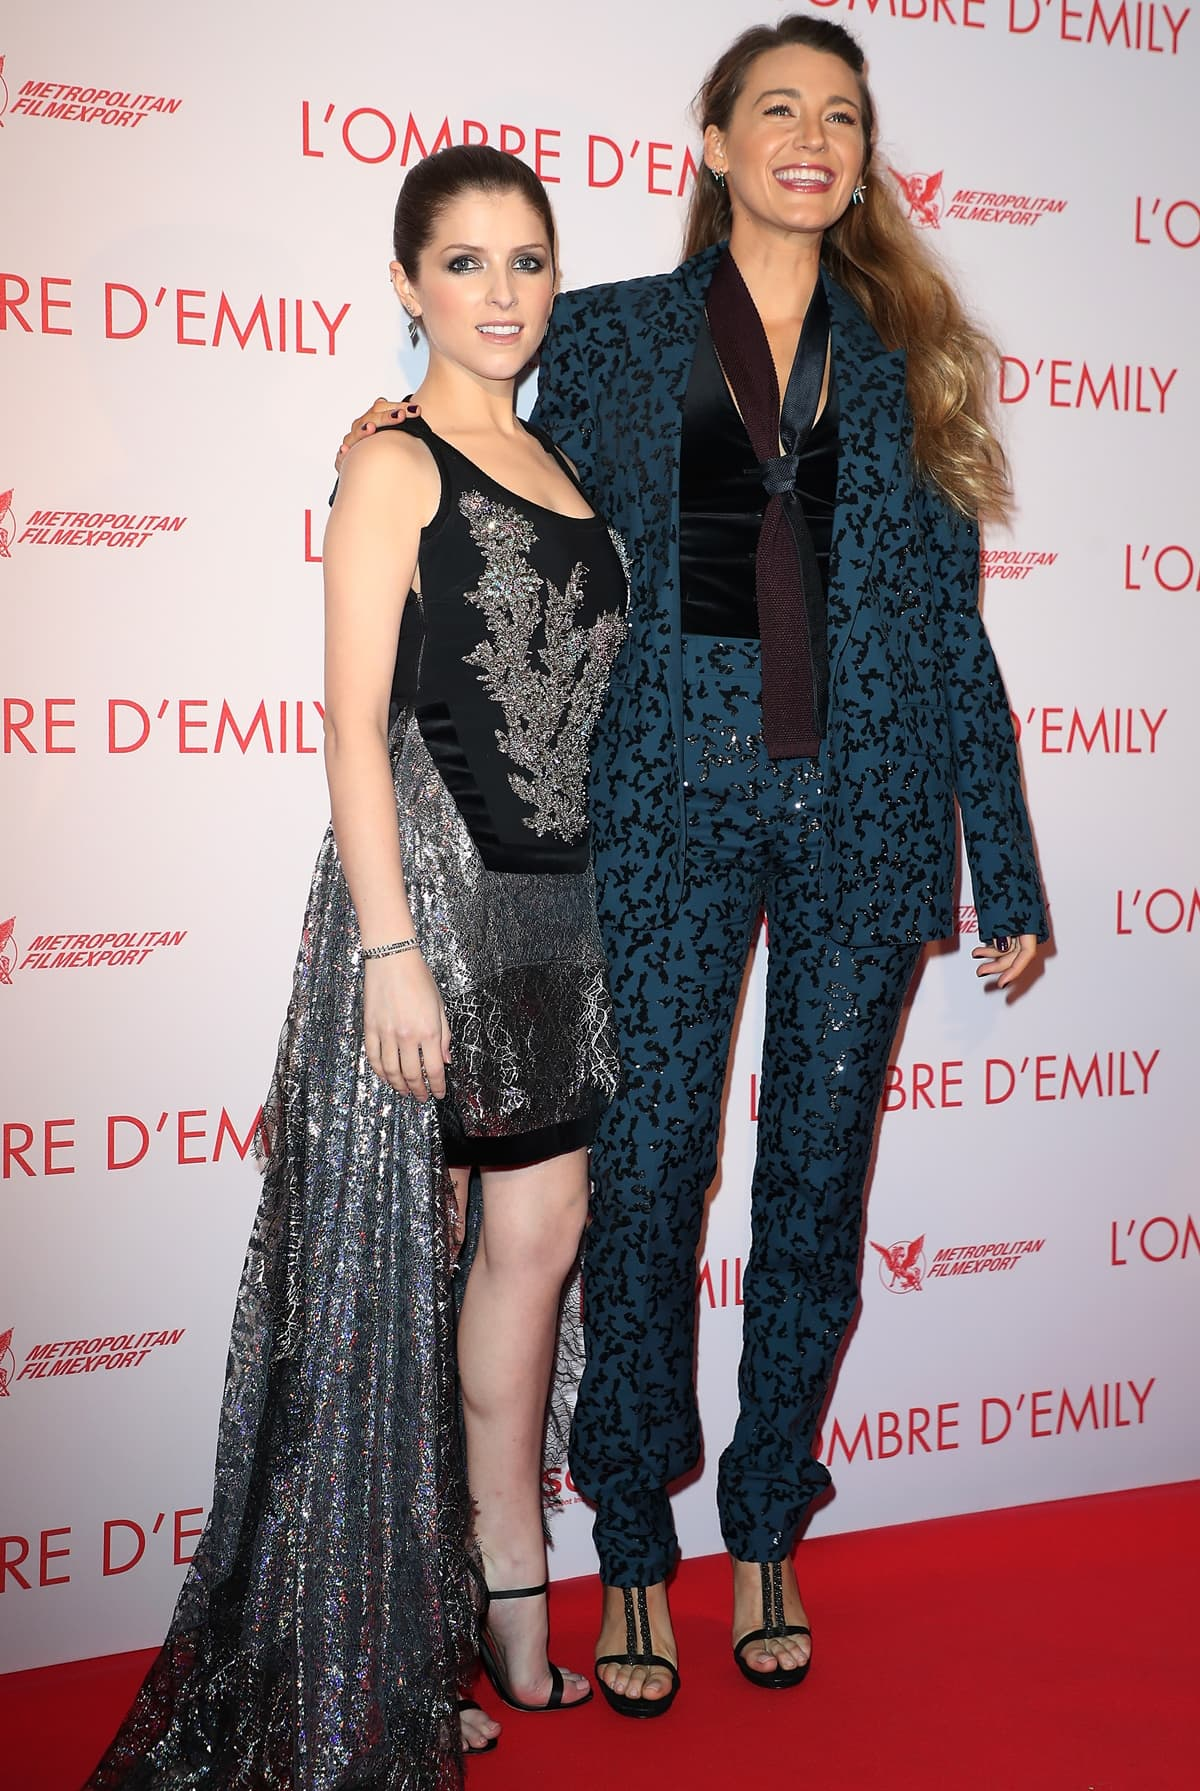 Anna Kendrick and Blake Lively promoting their 2018 American black comedy crime thriller film A Simple Favor in Paris